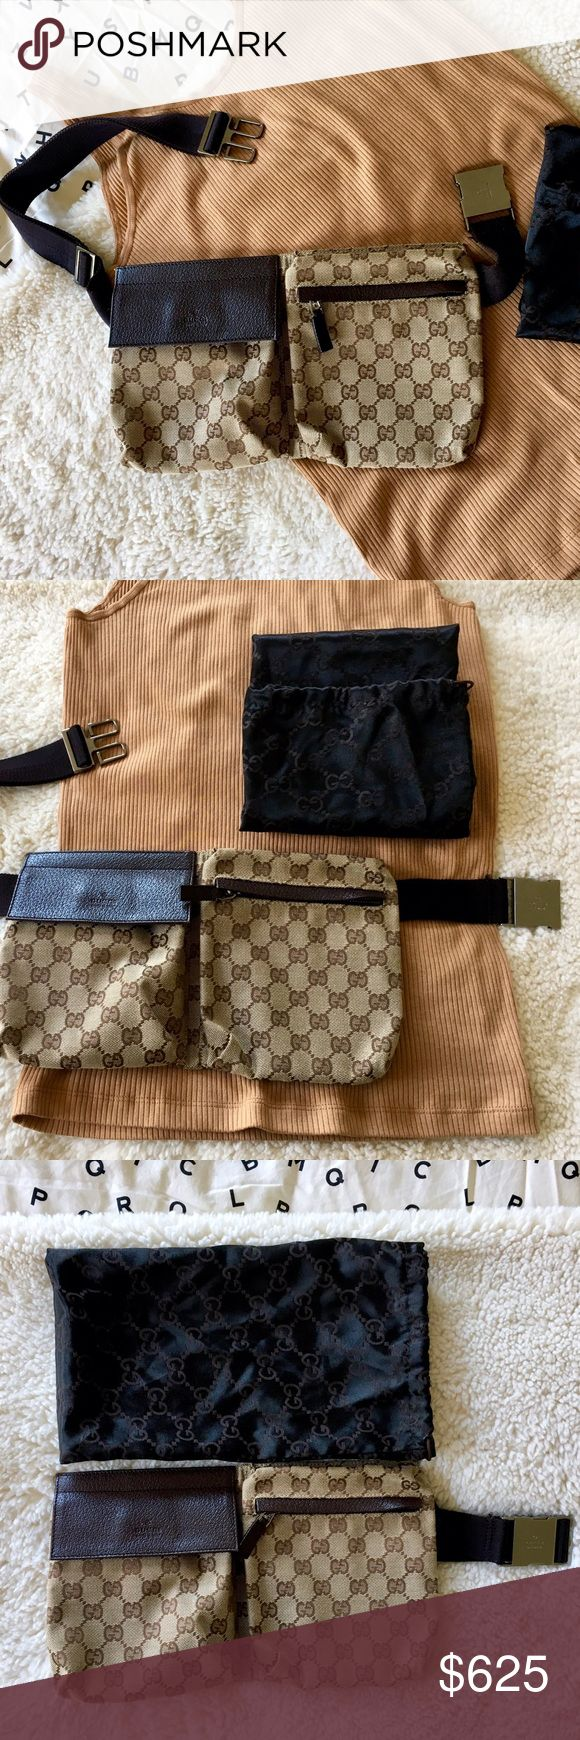 """Gucci GG Canvas Belt Bag- Beige/Ebony-Cocoa GG canvas belt bag with fastener on front pocket, and rear zip pocket. Original GG beige/ebony-cocoa leather trim and strap. Adjustable waist or shoulder strap with Gucci trademark engraved clip, ruthenium hardware closure. Double compartments with hook-and-loop flap velcro closure and zip. Front and rear zippers run smoothly. Dust bag included. Made in Italy.                            Approx measurements:  10"""" x 6"""" x 1"""" Gucci Bags Crossbody Bags"""